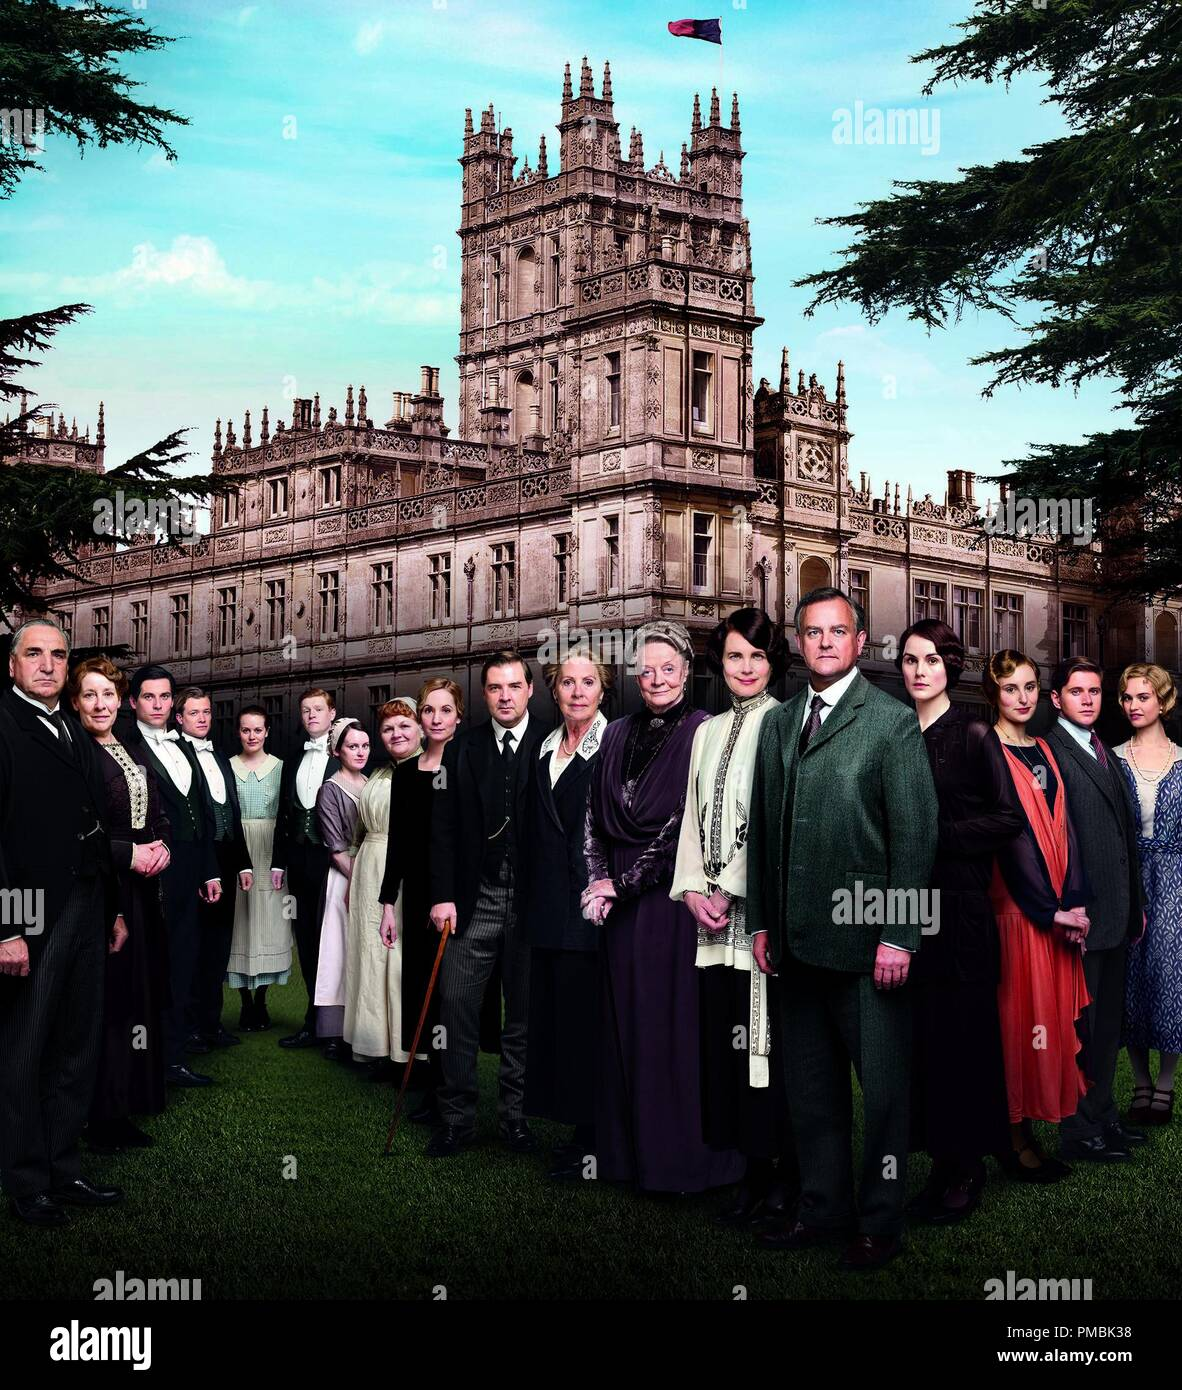 Downton Abbey Season 4  Season 4 of the international hit Downton Abbey finds aristocrats and servants coping with last season's shocking finale. The acclaimed ensemble is back, including Dame Maggie Smith, Elizabeth McGovern, Hugh Bonneville, Michelle Dockery, Jim Carter,  Penelope Wilton, and Laura Carmichael - together with returning guest star Academy Award-winner Shirley MacLaine and new guest star Paul Giamatti. - Stock Image